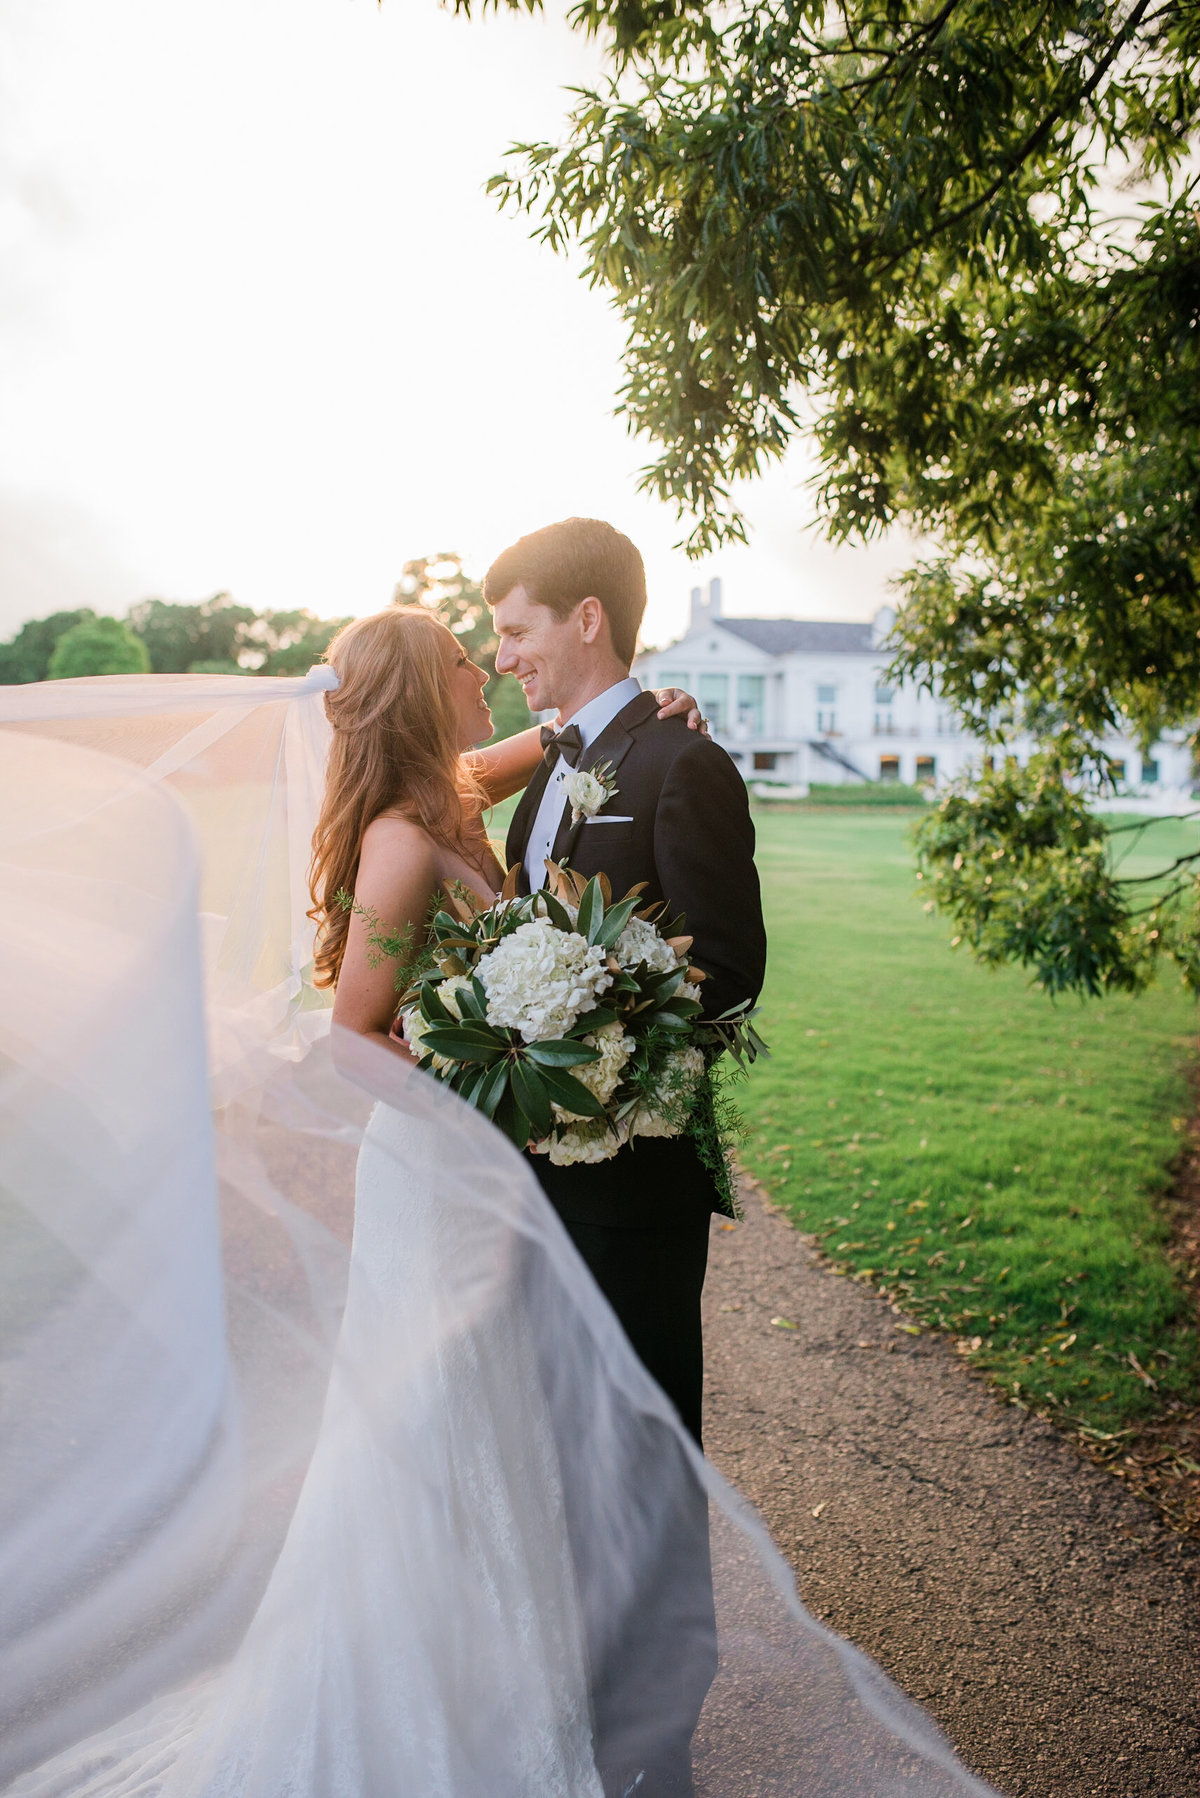 StevenandChandler|CharlotteCountryClubWedding30